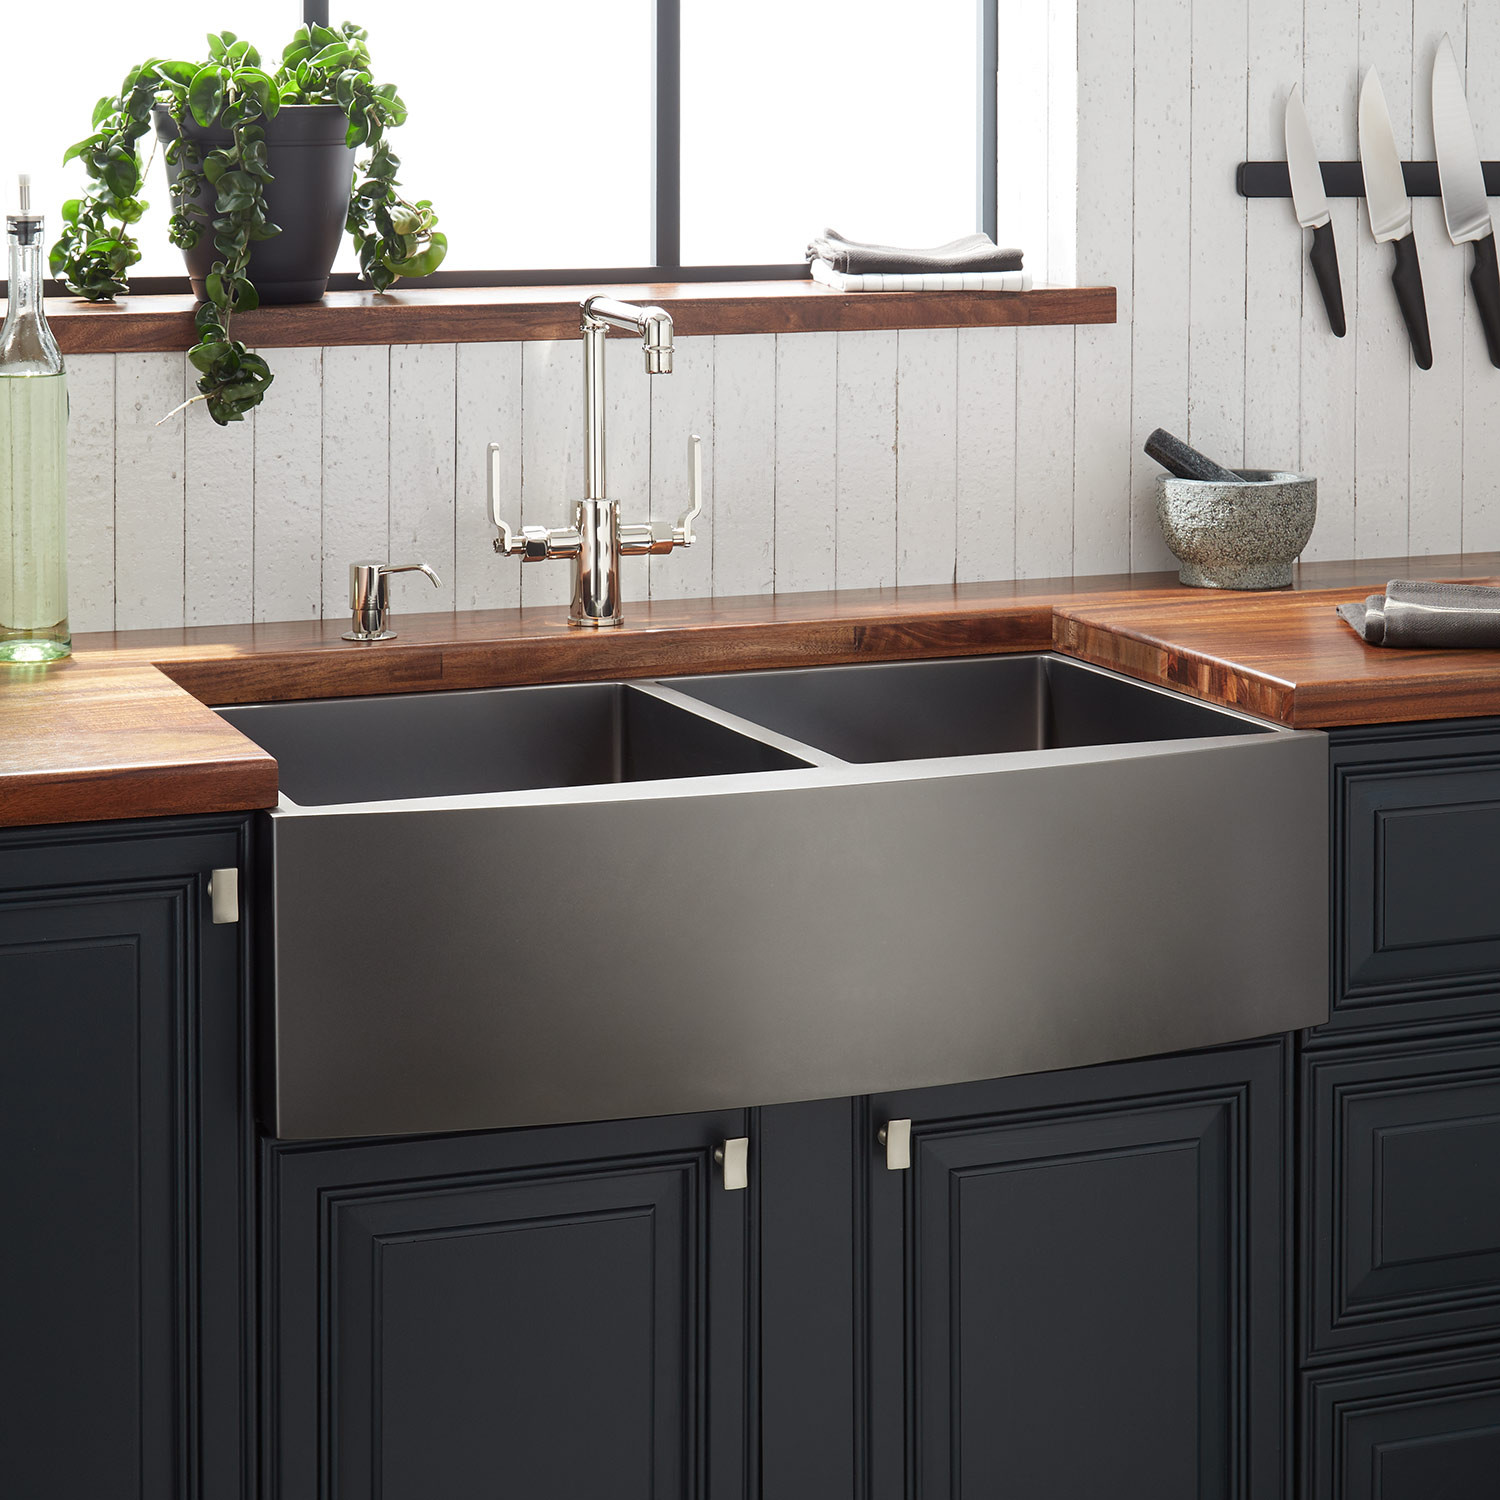 New 33 In Double Bowl Kitchen Sink Farmhouse Apron App3320